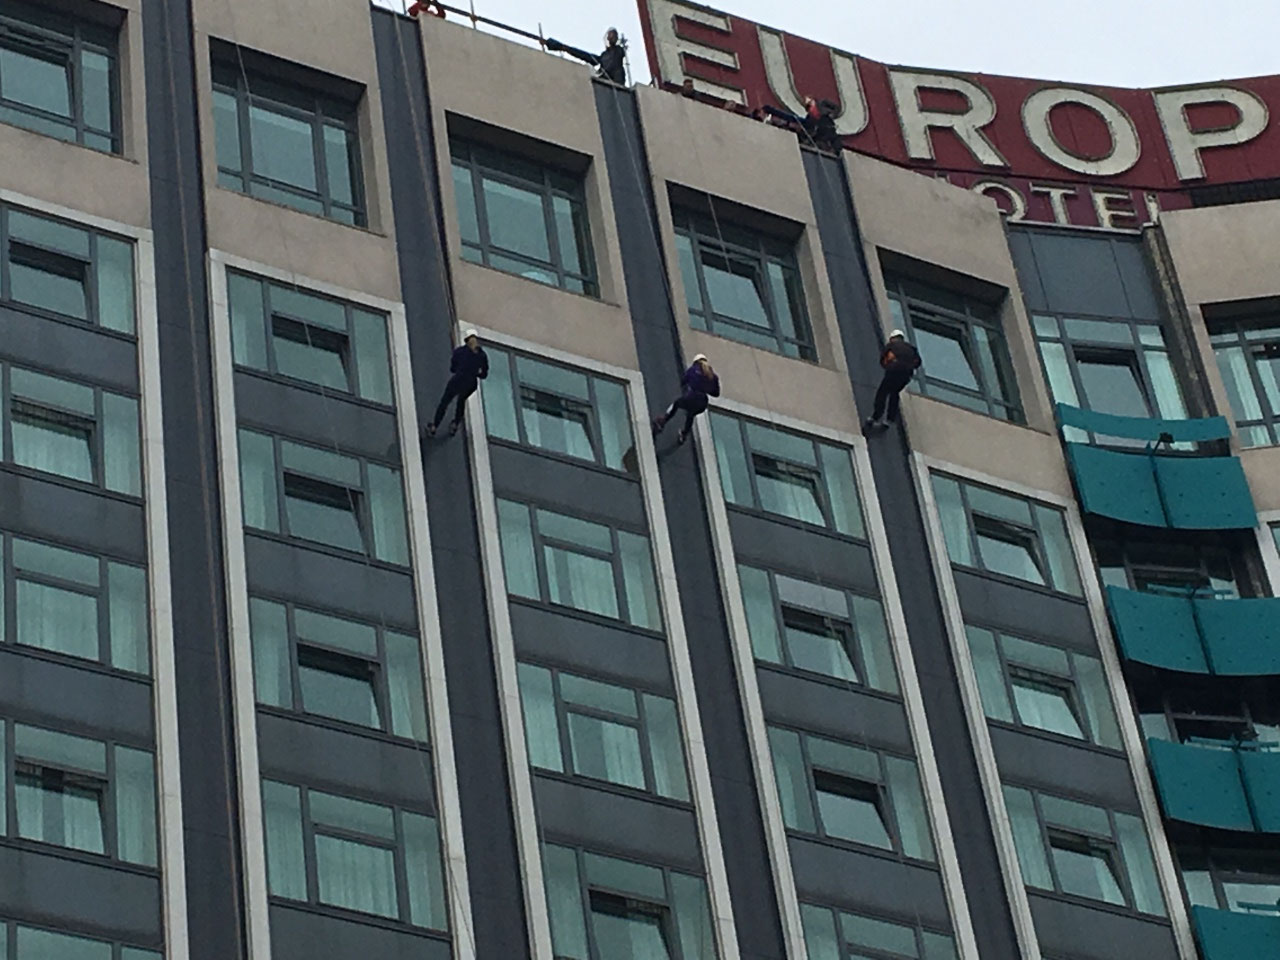 Rappelling down the Europa Hotel...not me though!